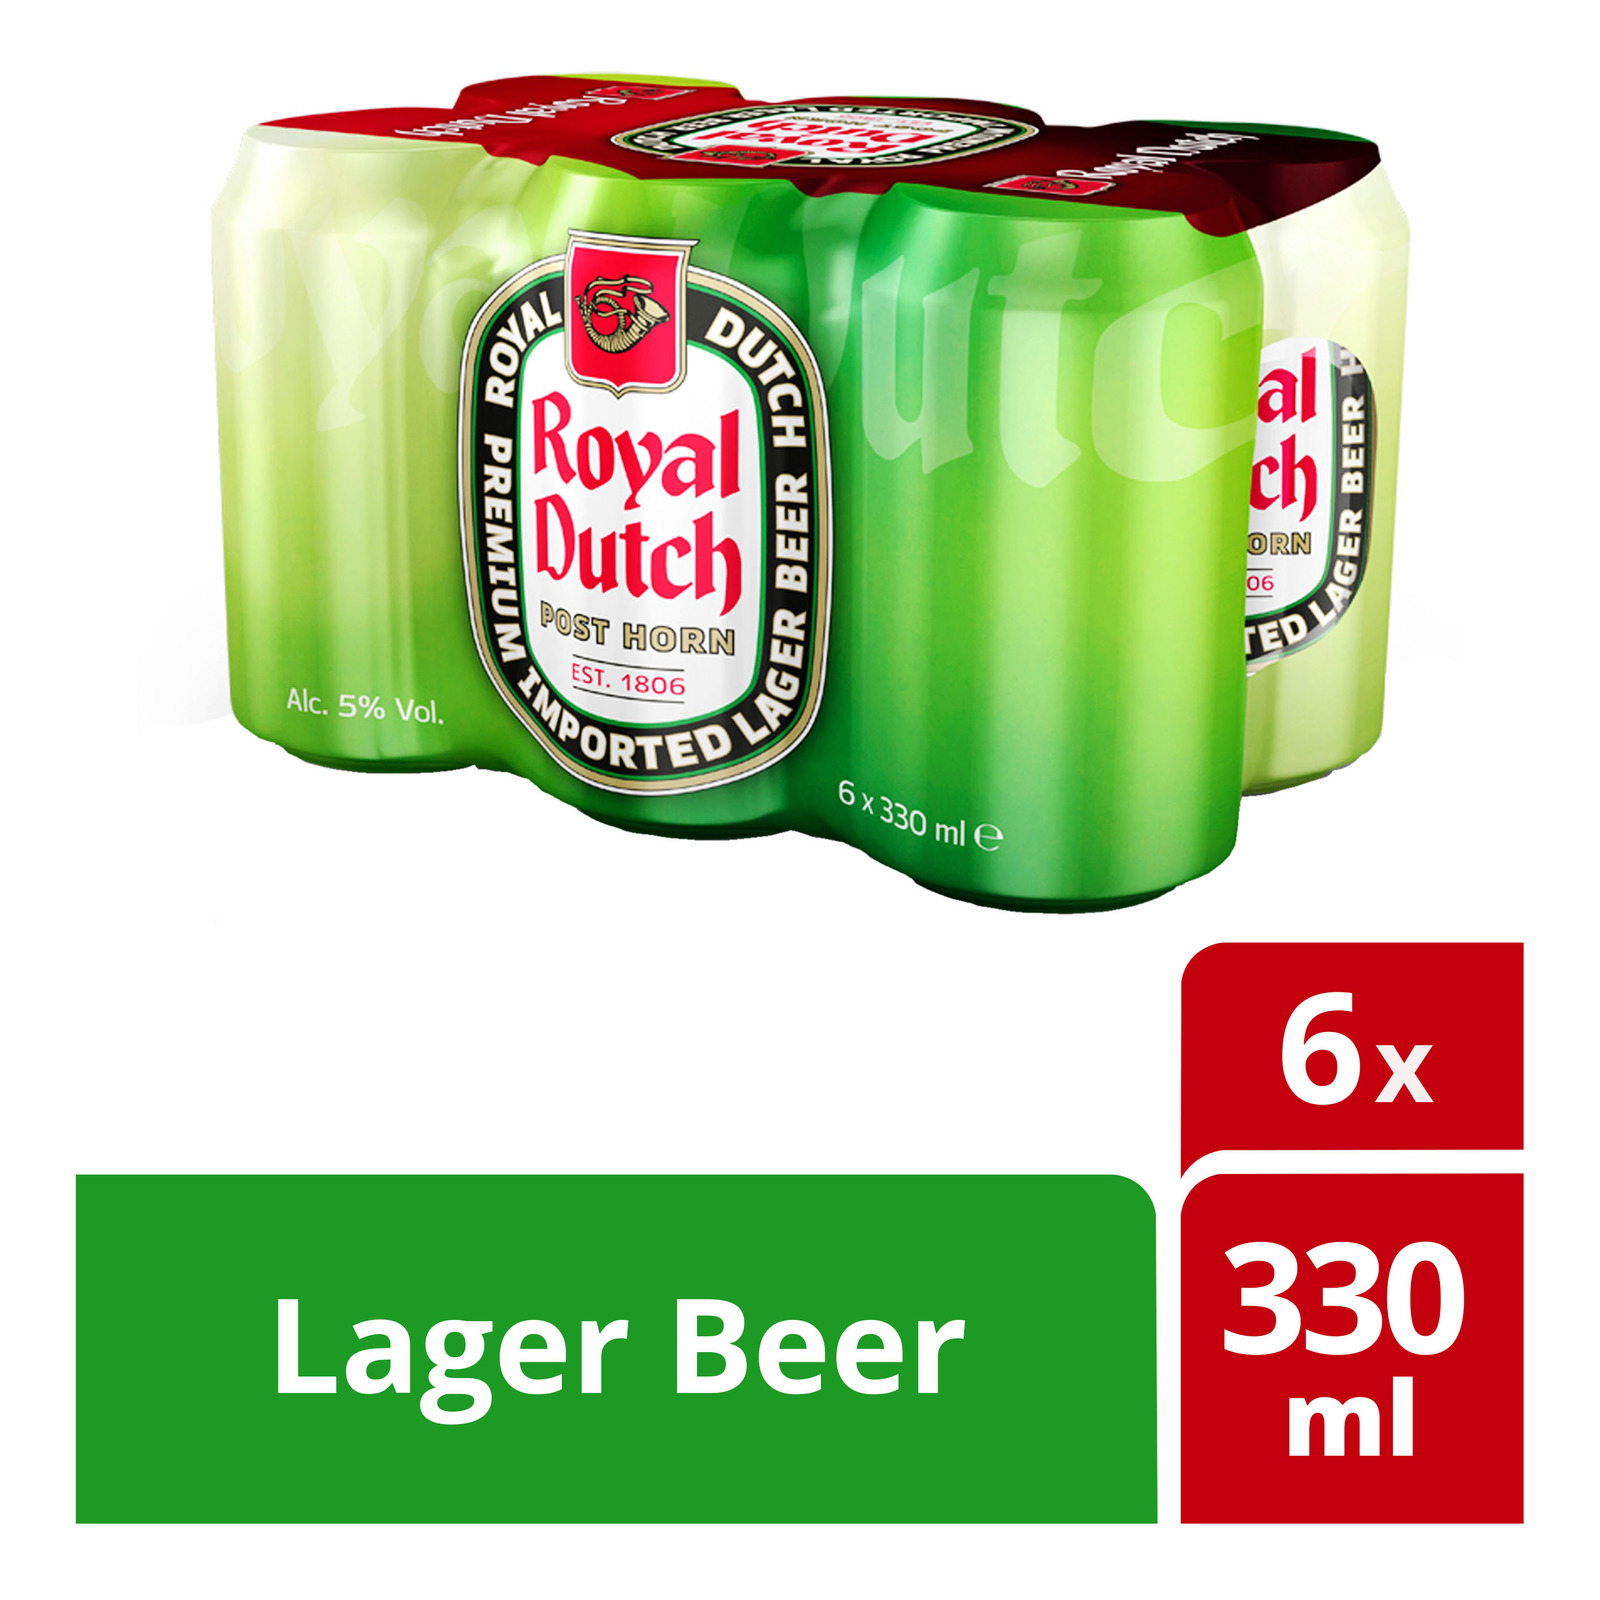 Royal Dutch Larger Can Beer